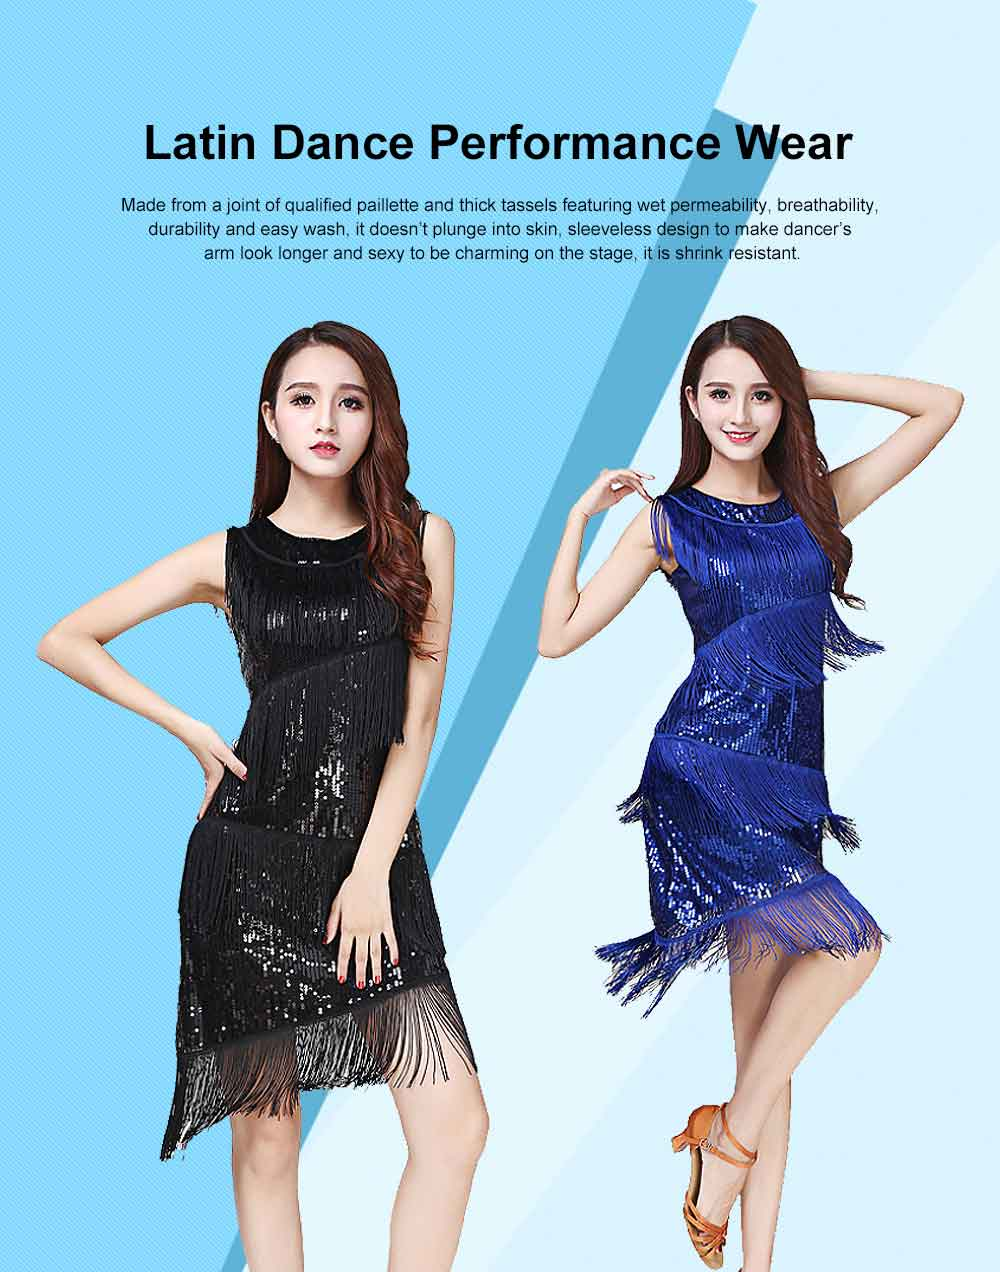 Latin Dance Performance Wear with Paillette Tassels Accessory, Dancing Party Performance Costume,  Sleeveless Latin Skirt Formal Wear for Latin Dance Competition 0